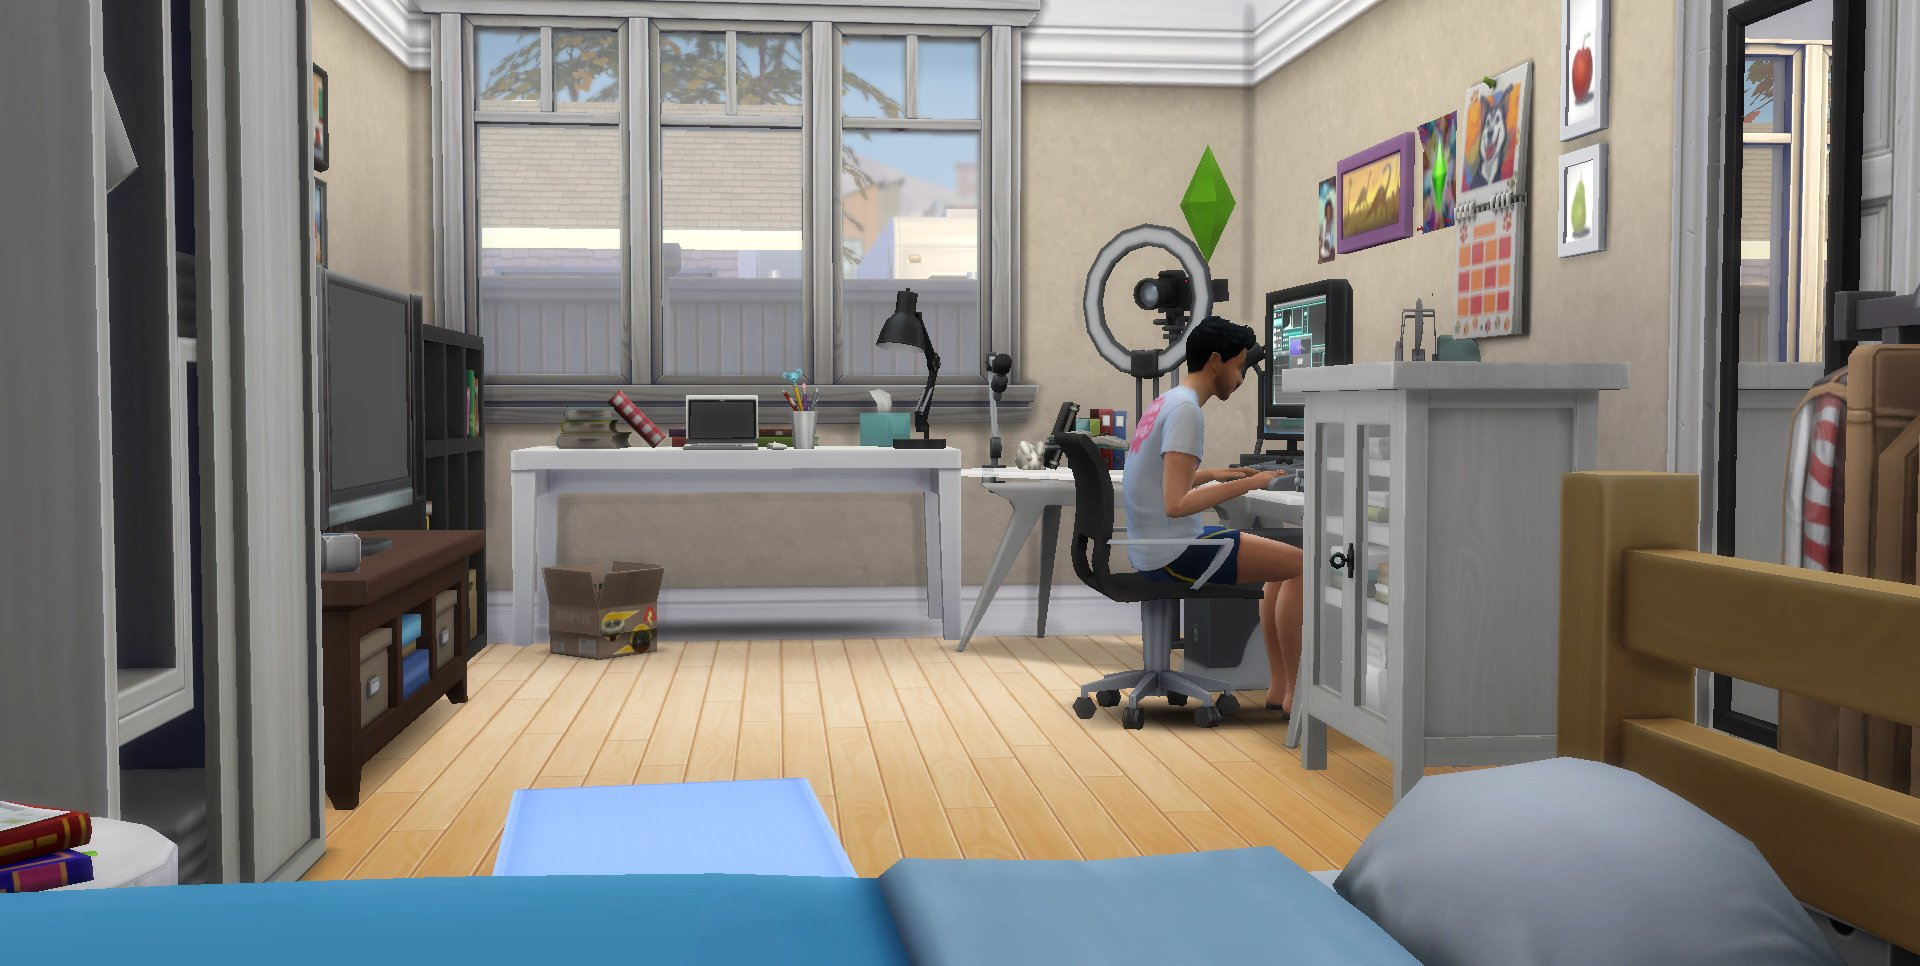 A Sims character sitting in a neat office room